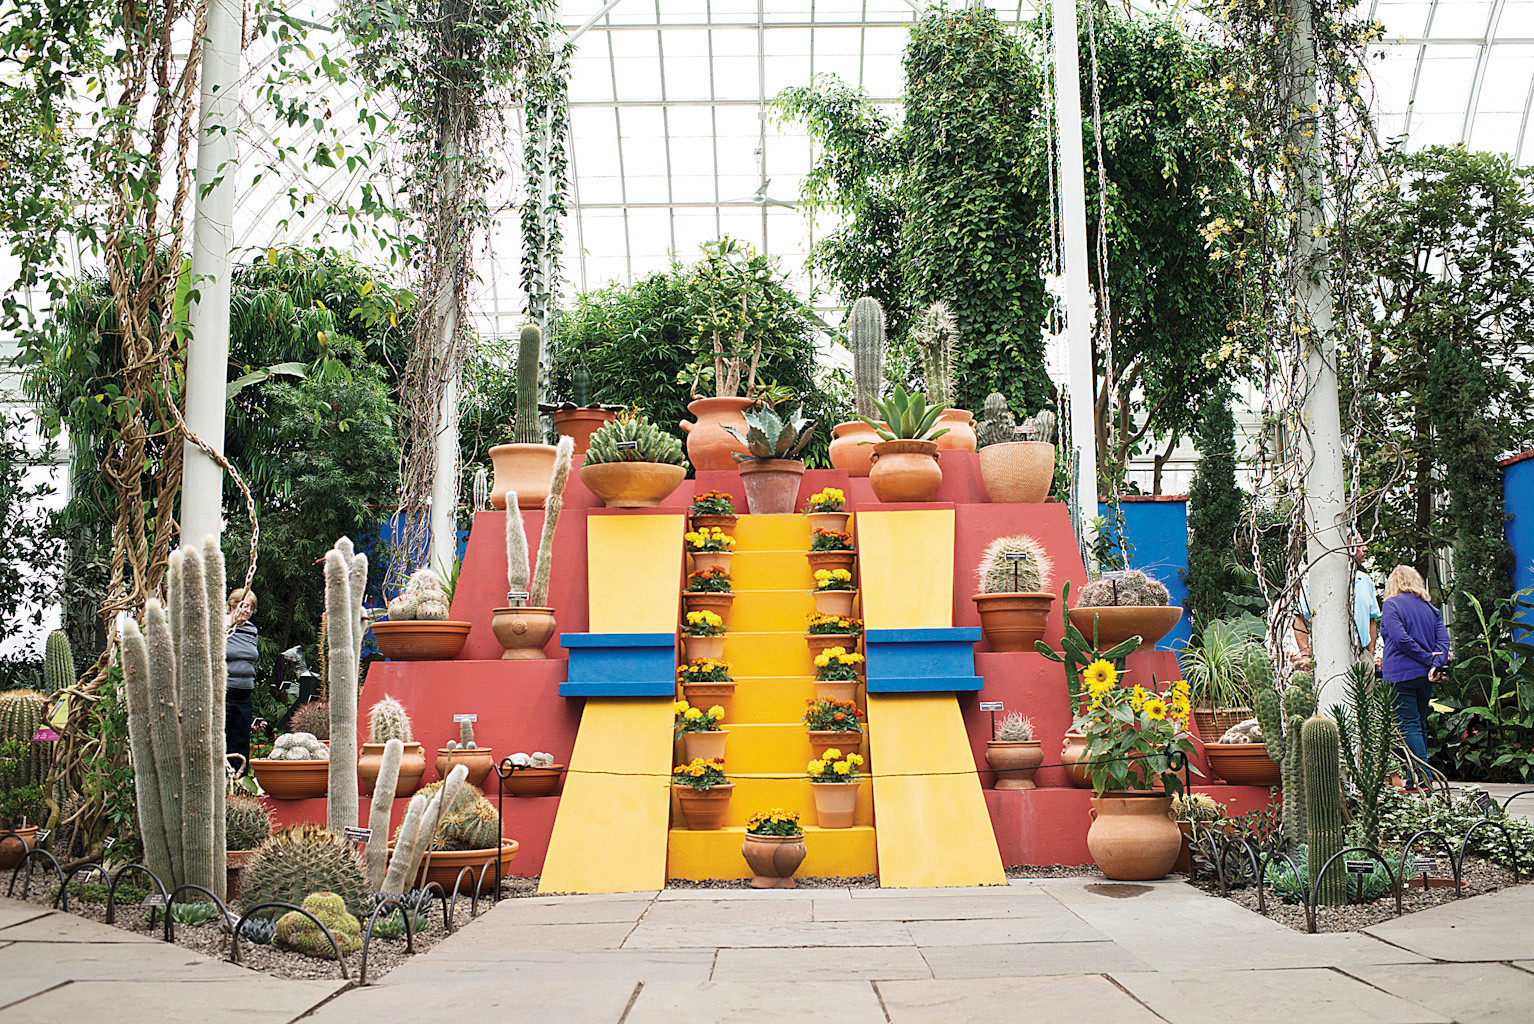 A large pyramid for plants and artwork to sit, similar to what Frida Kahlo had in her Mexico City home, 'Casa Azul.'